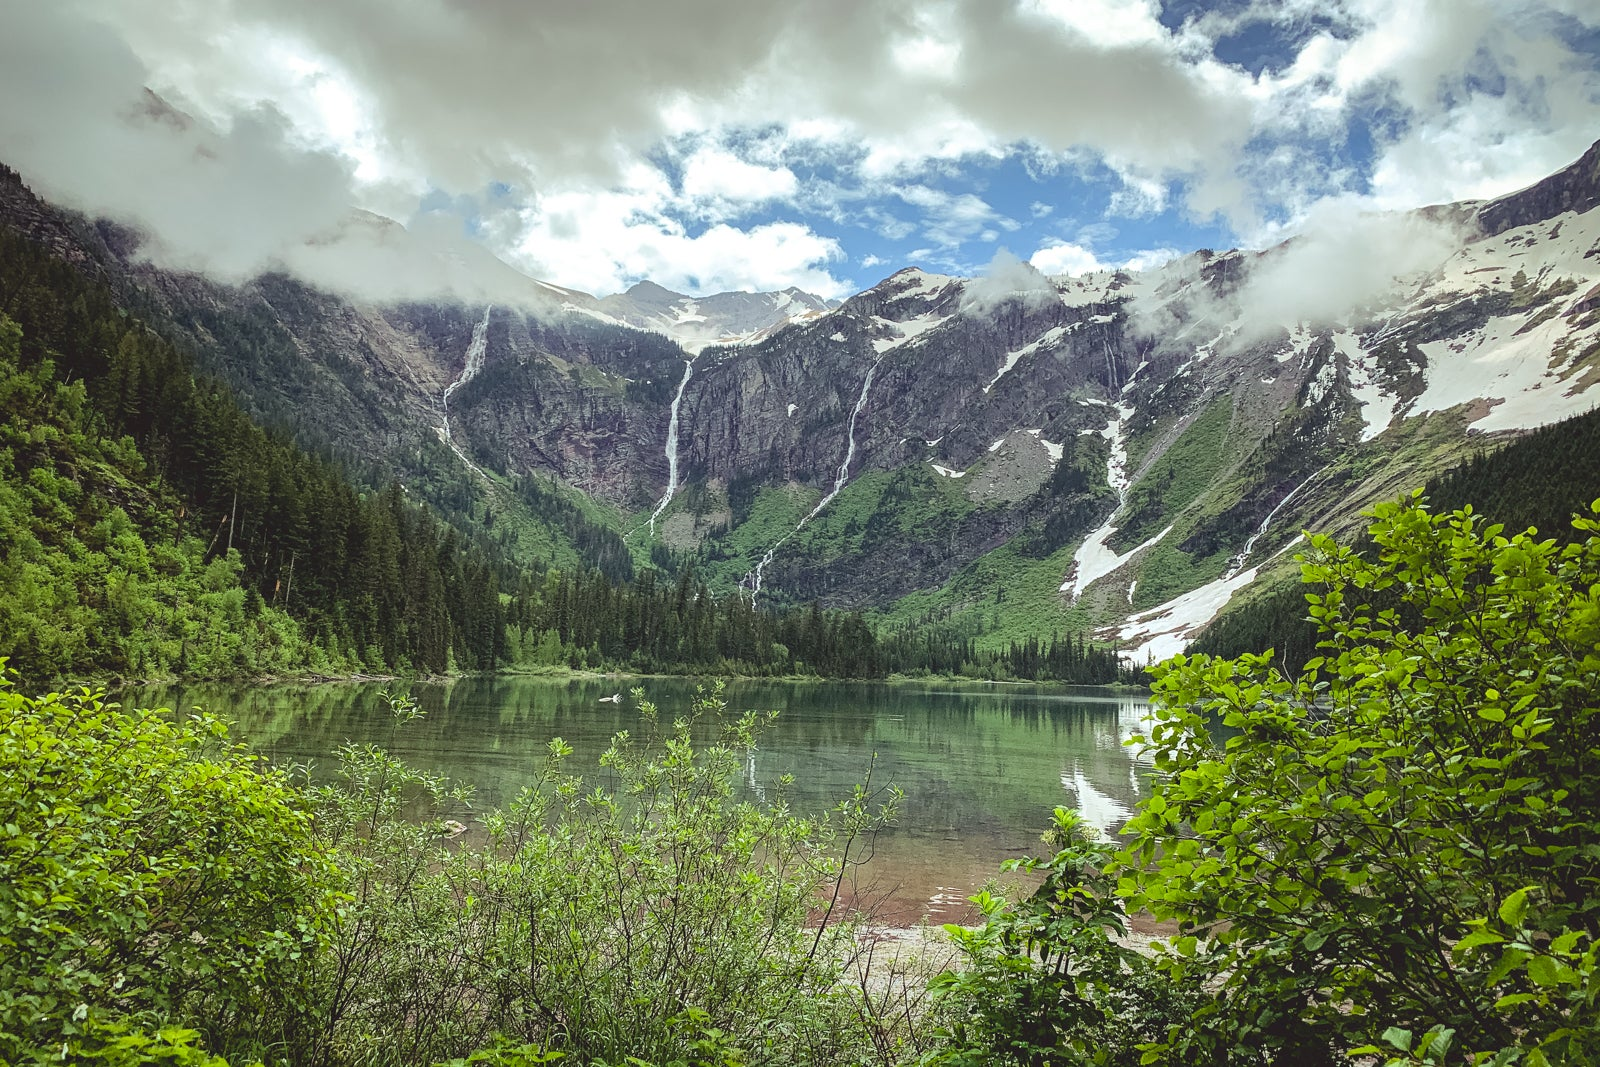 I went to Glacier and Yellowstone during COVID, and it was weird